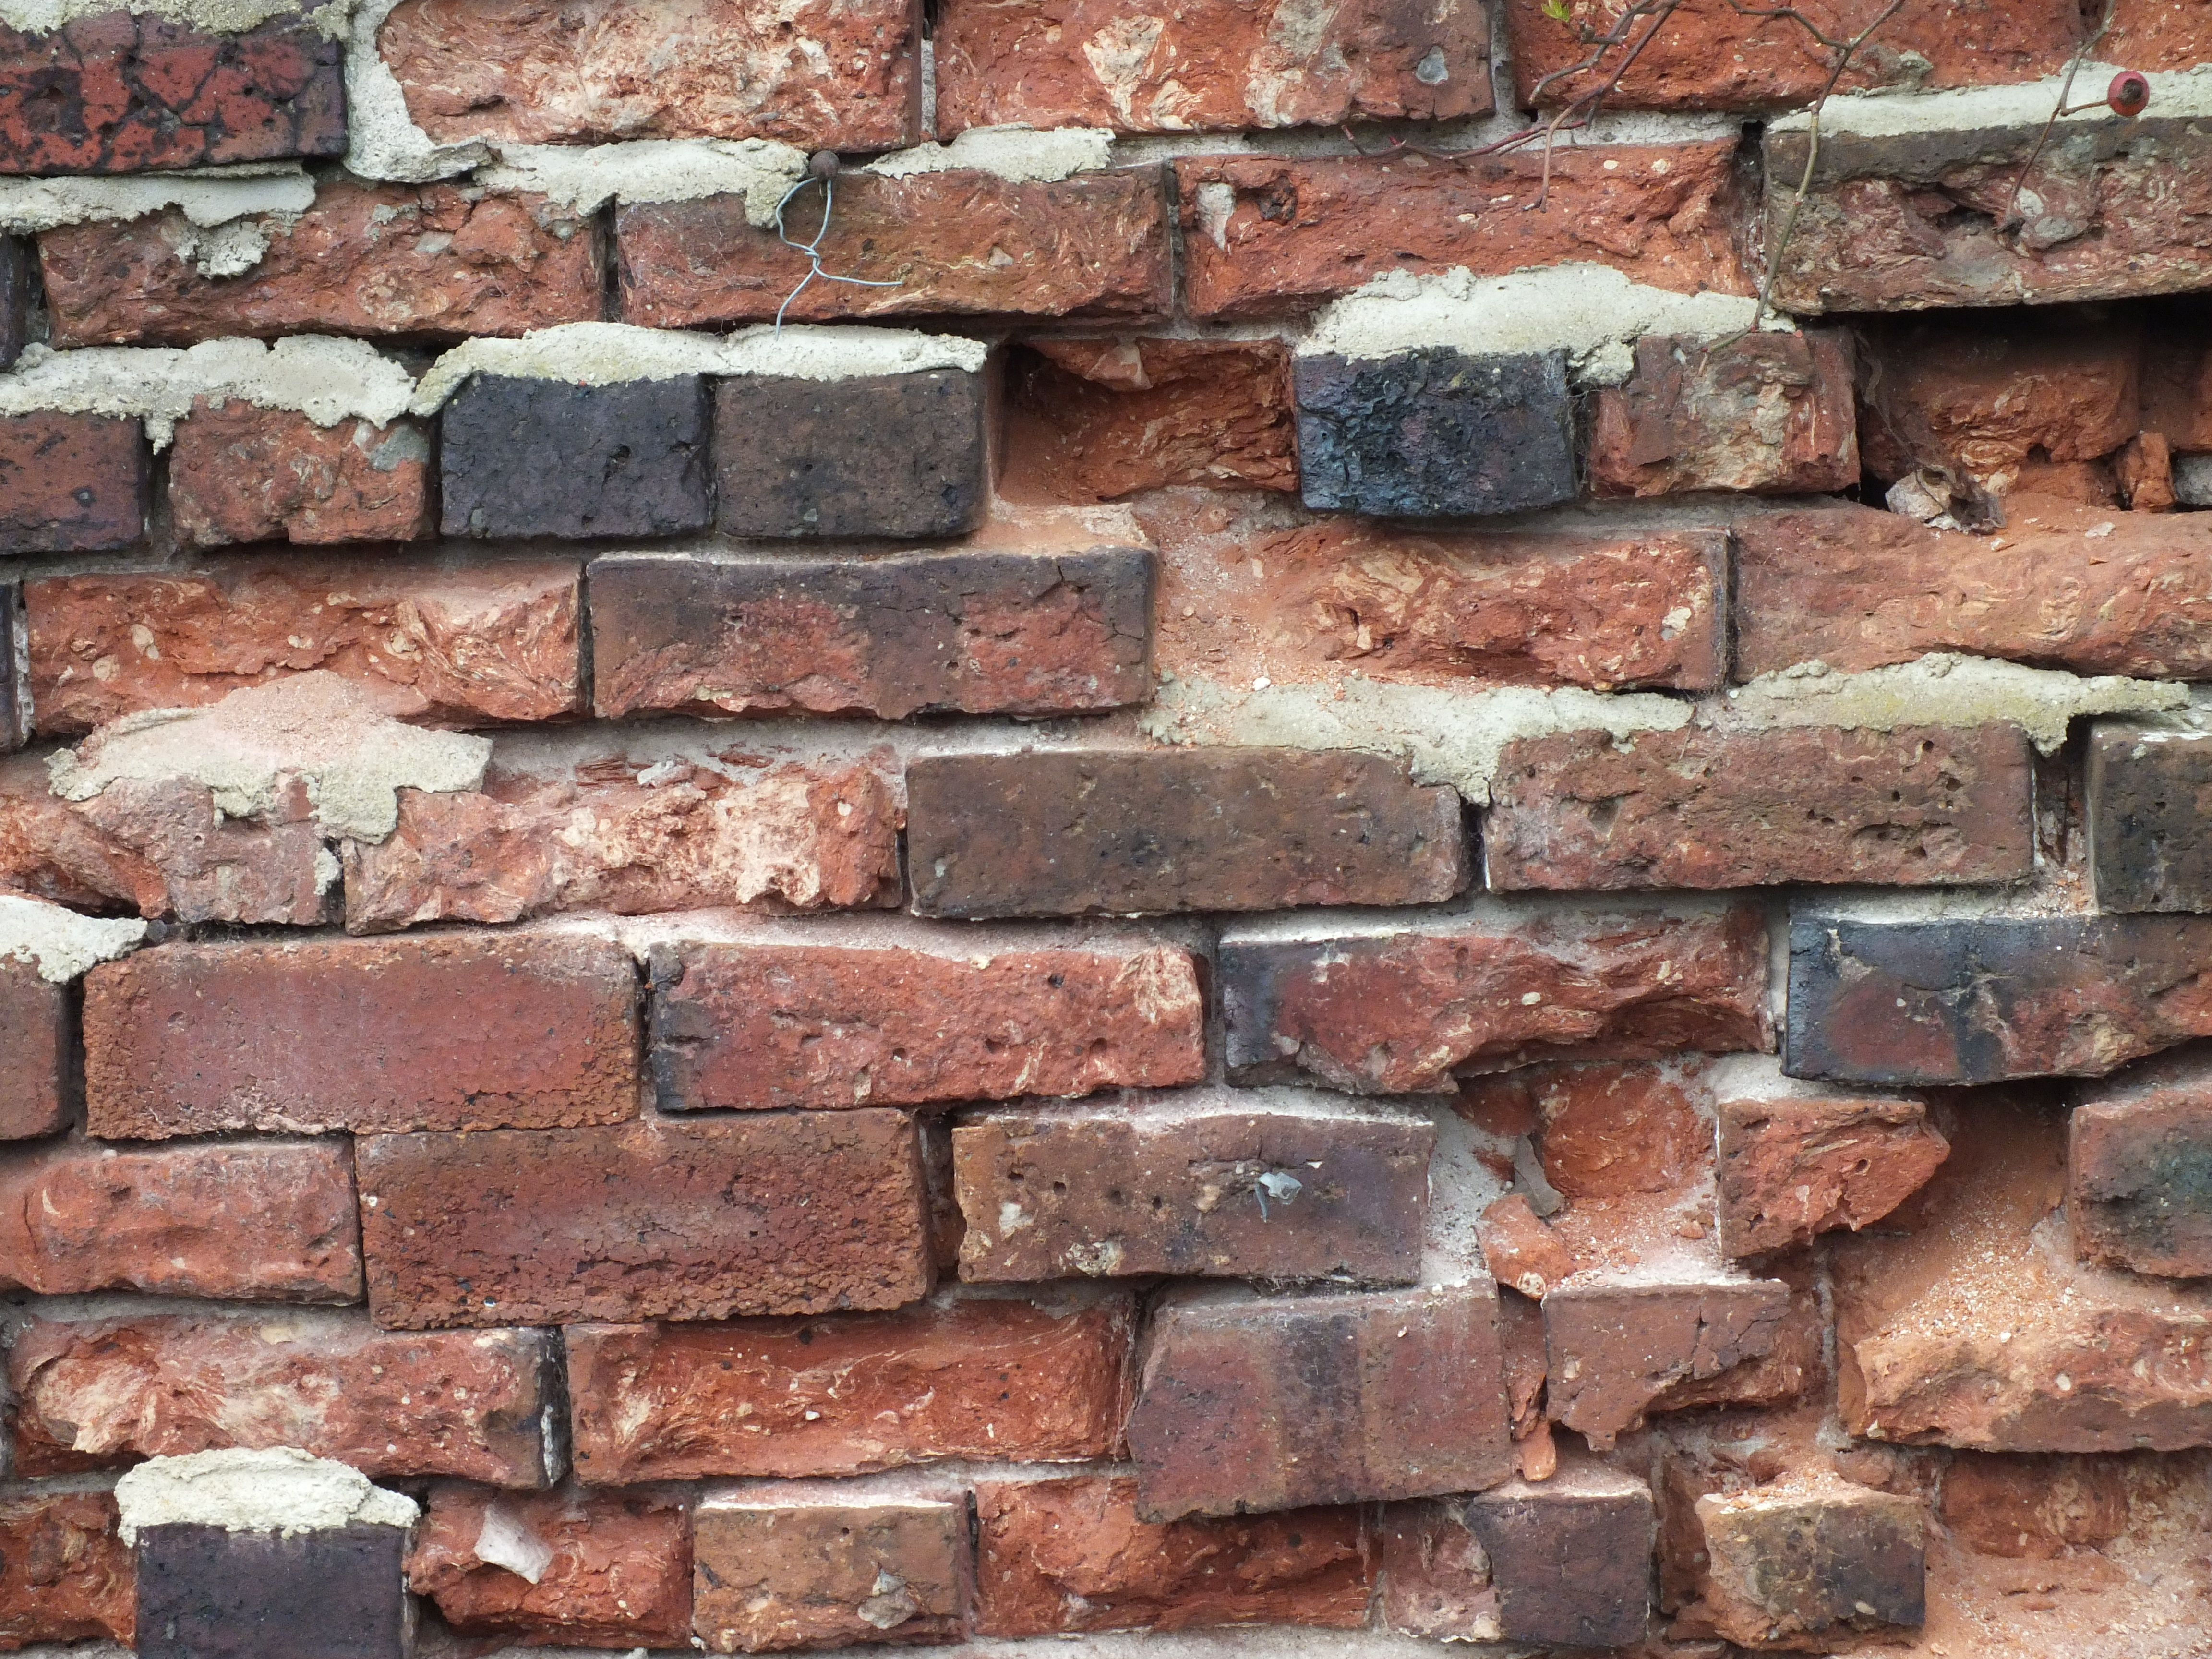 Brick Wall, Brick, Grunge, Red, Rough, HQ Photo